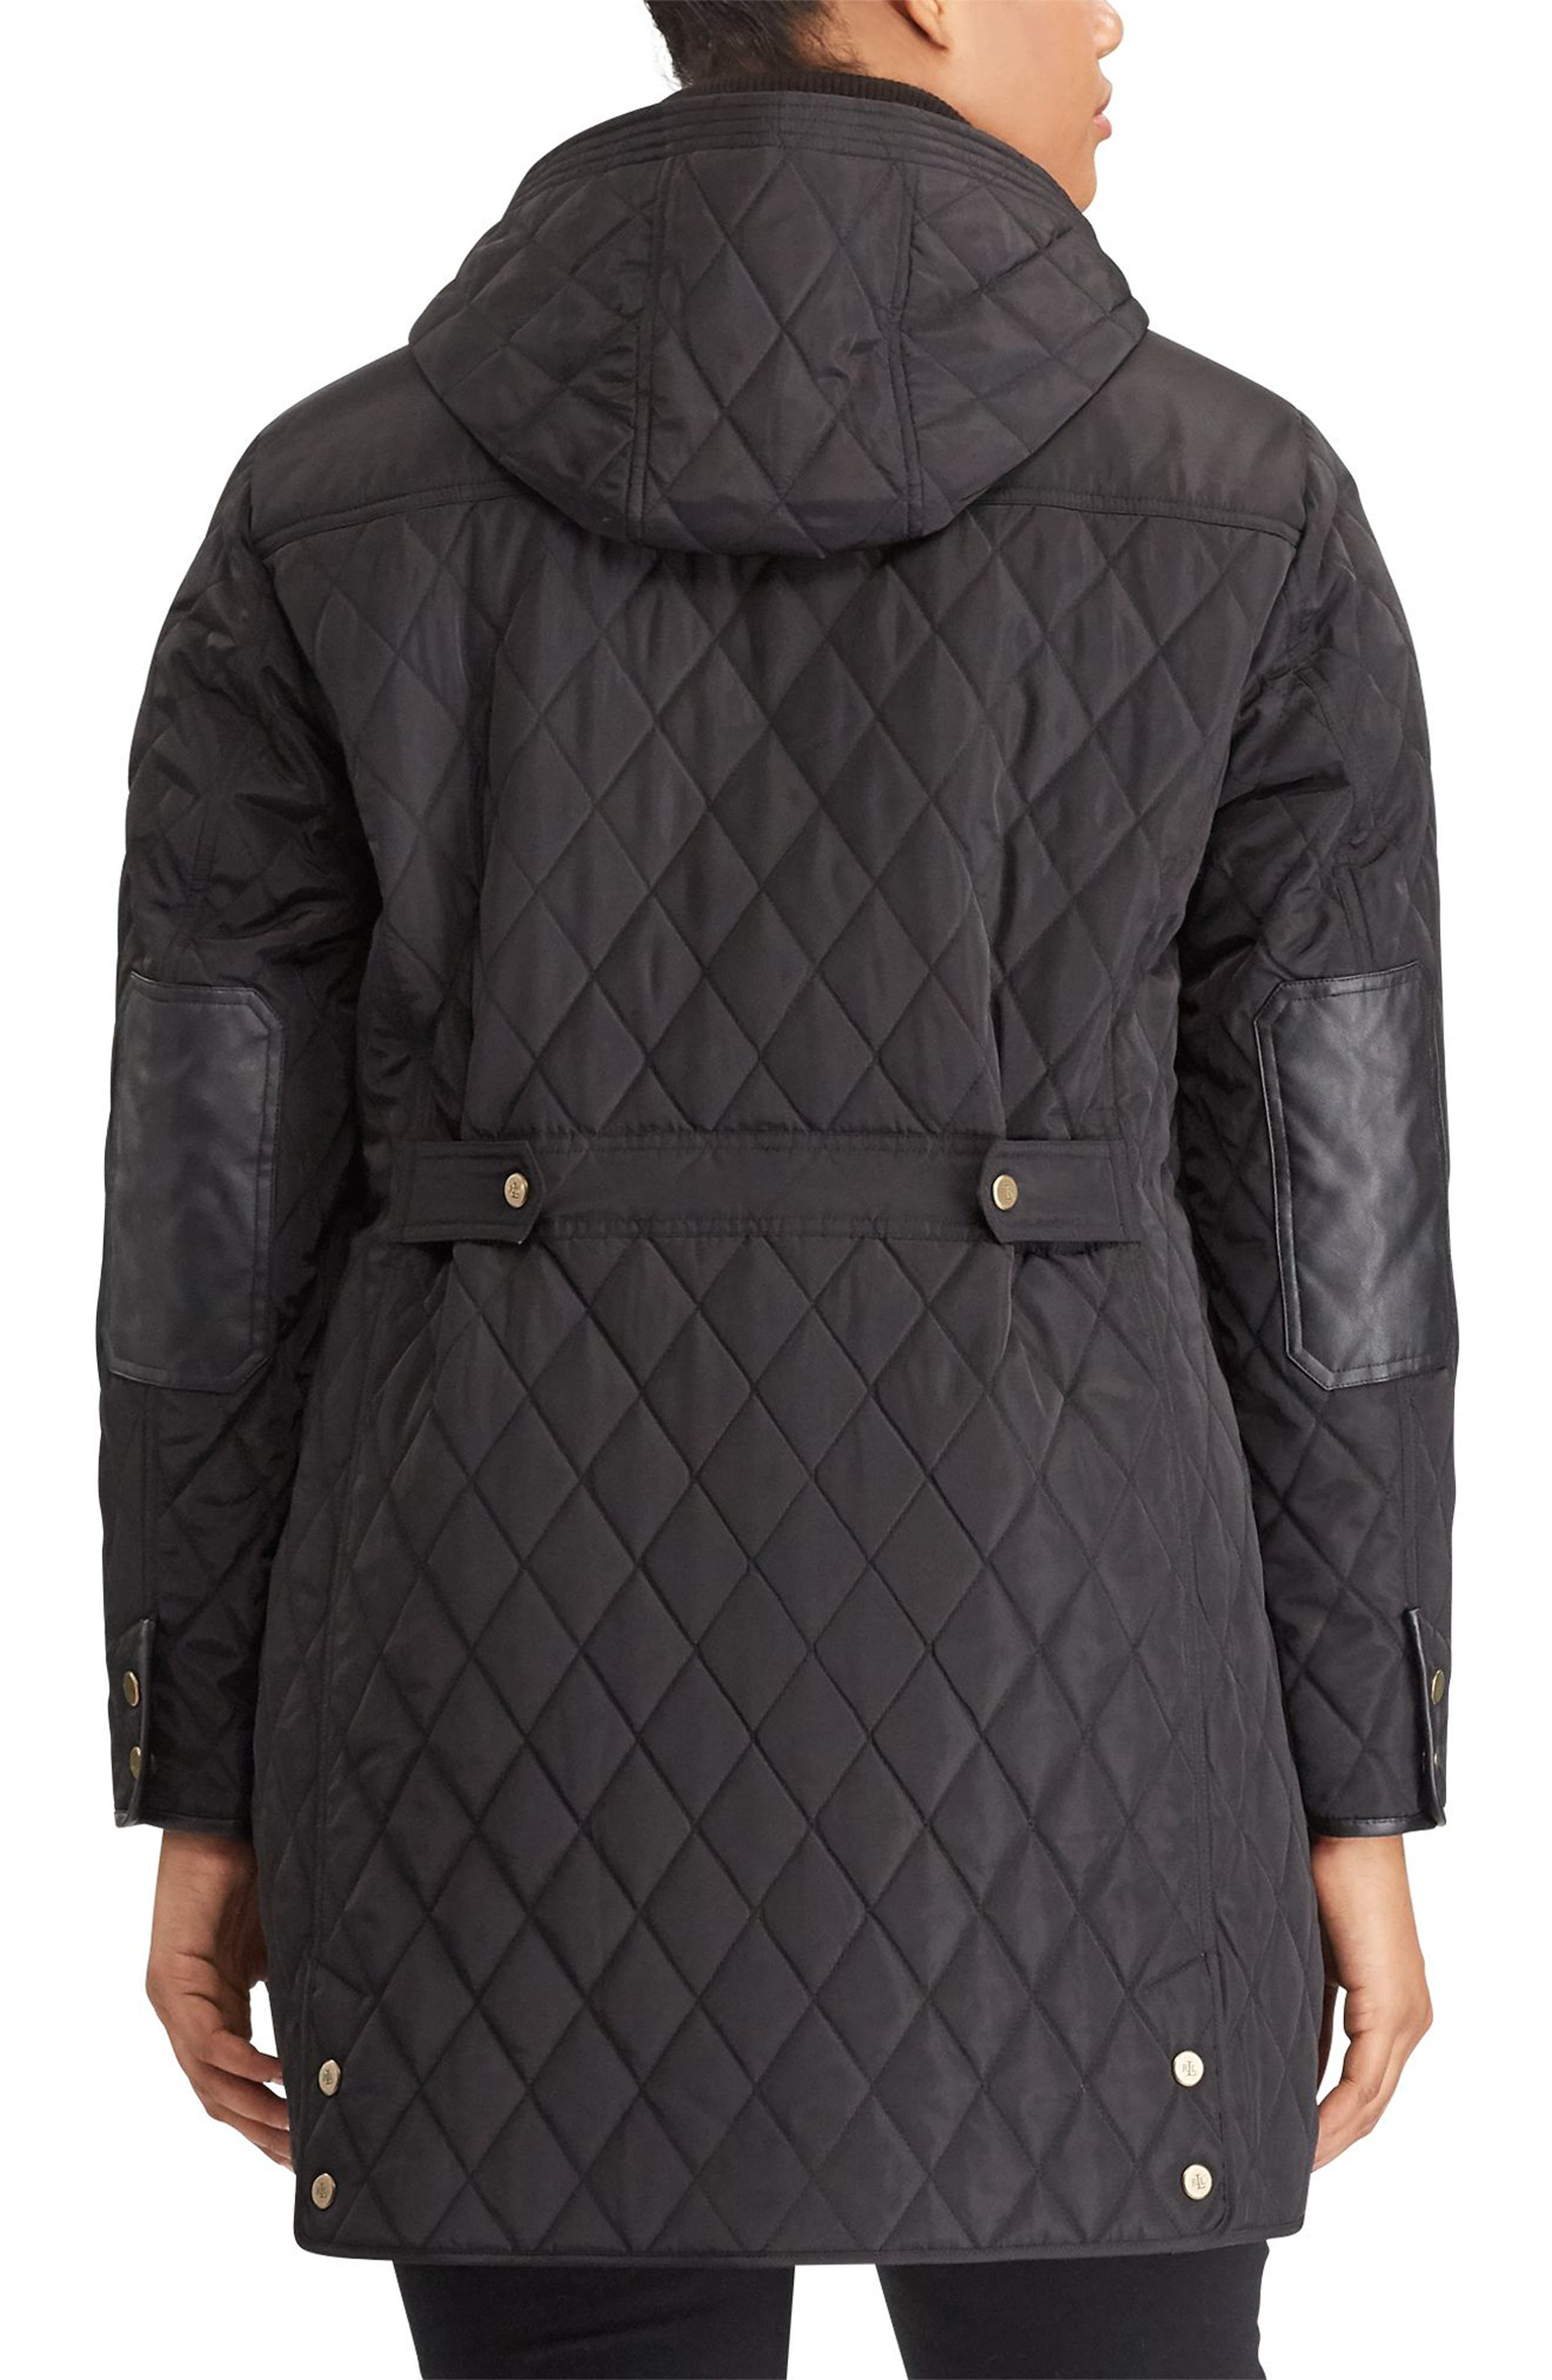 Diamond Quilted Jacket with Faux Leather Trim,                             Alternate thumbnail 2, color,                             001